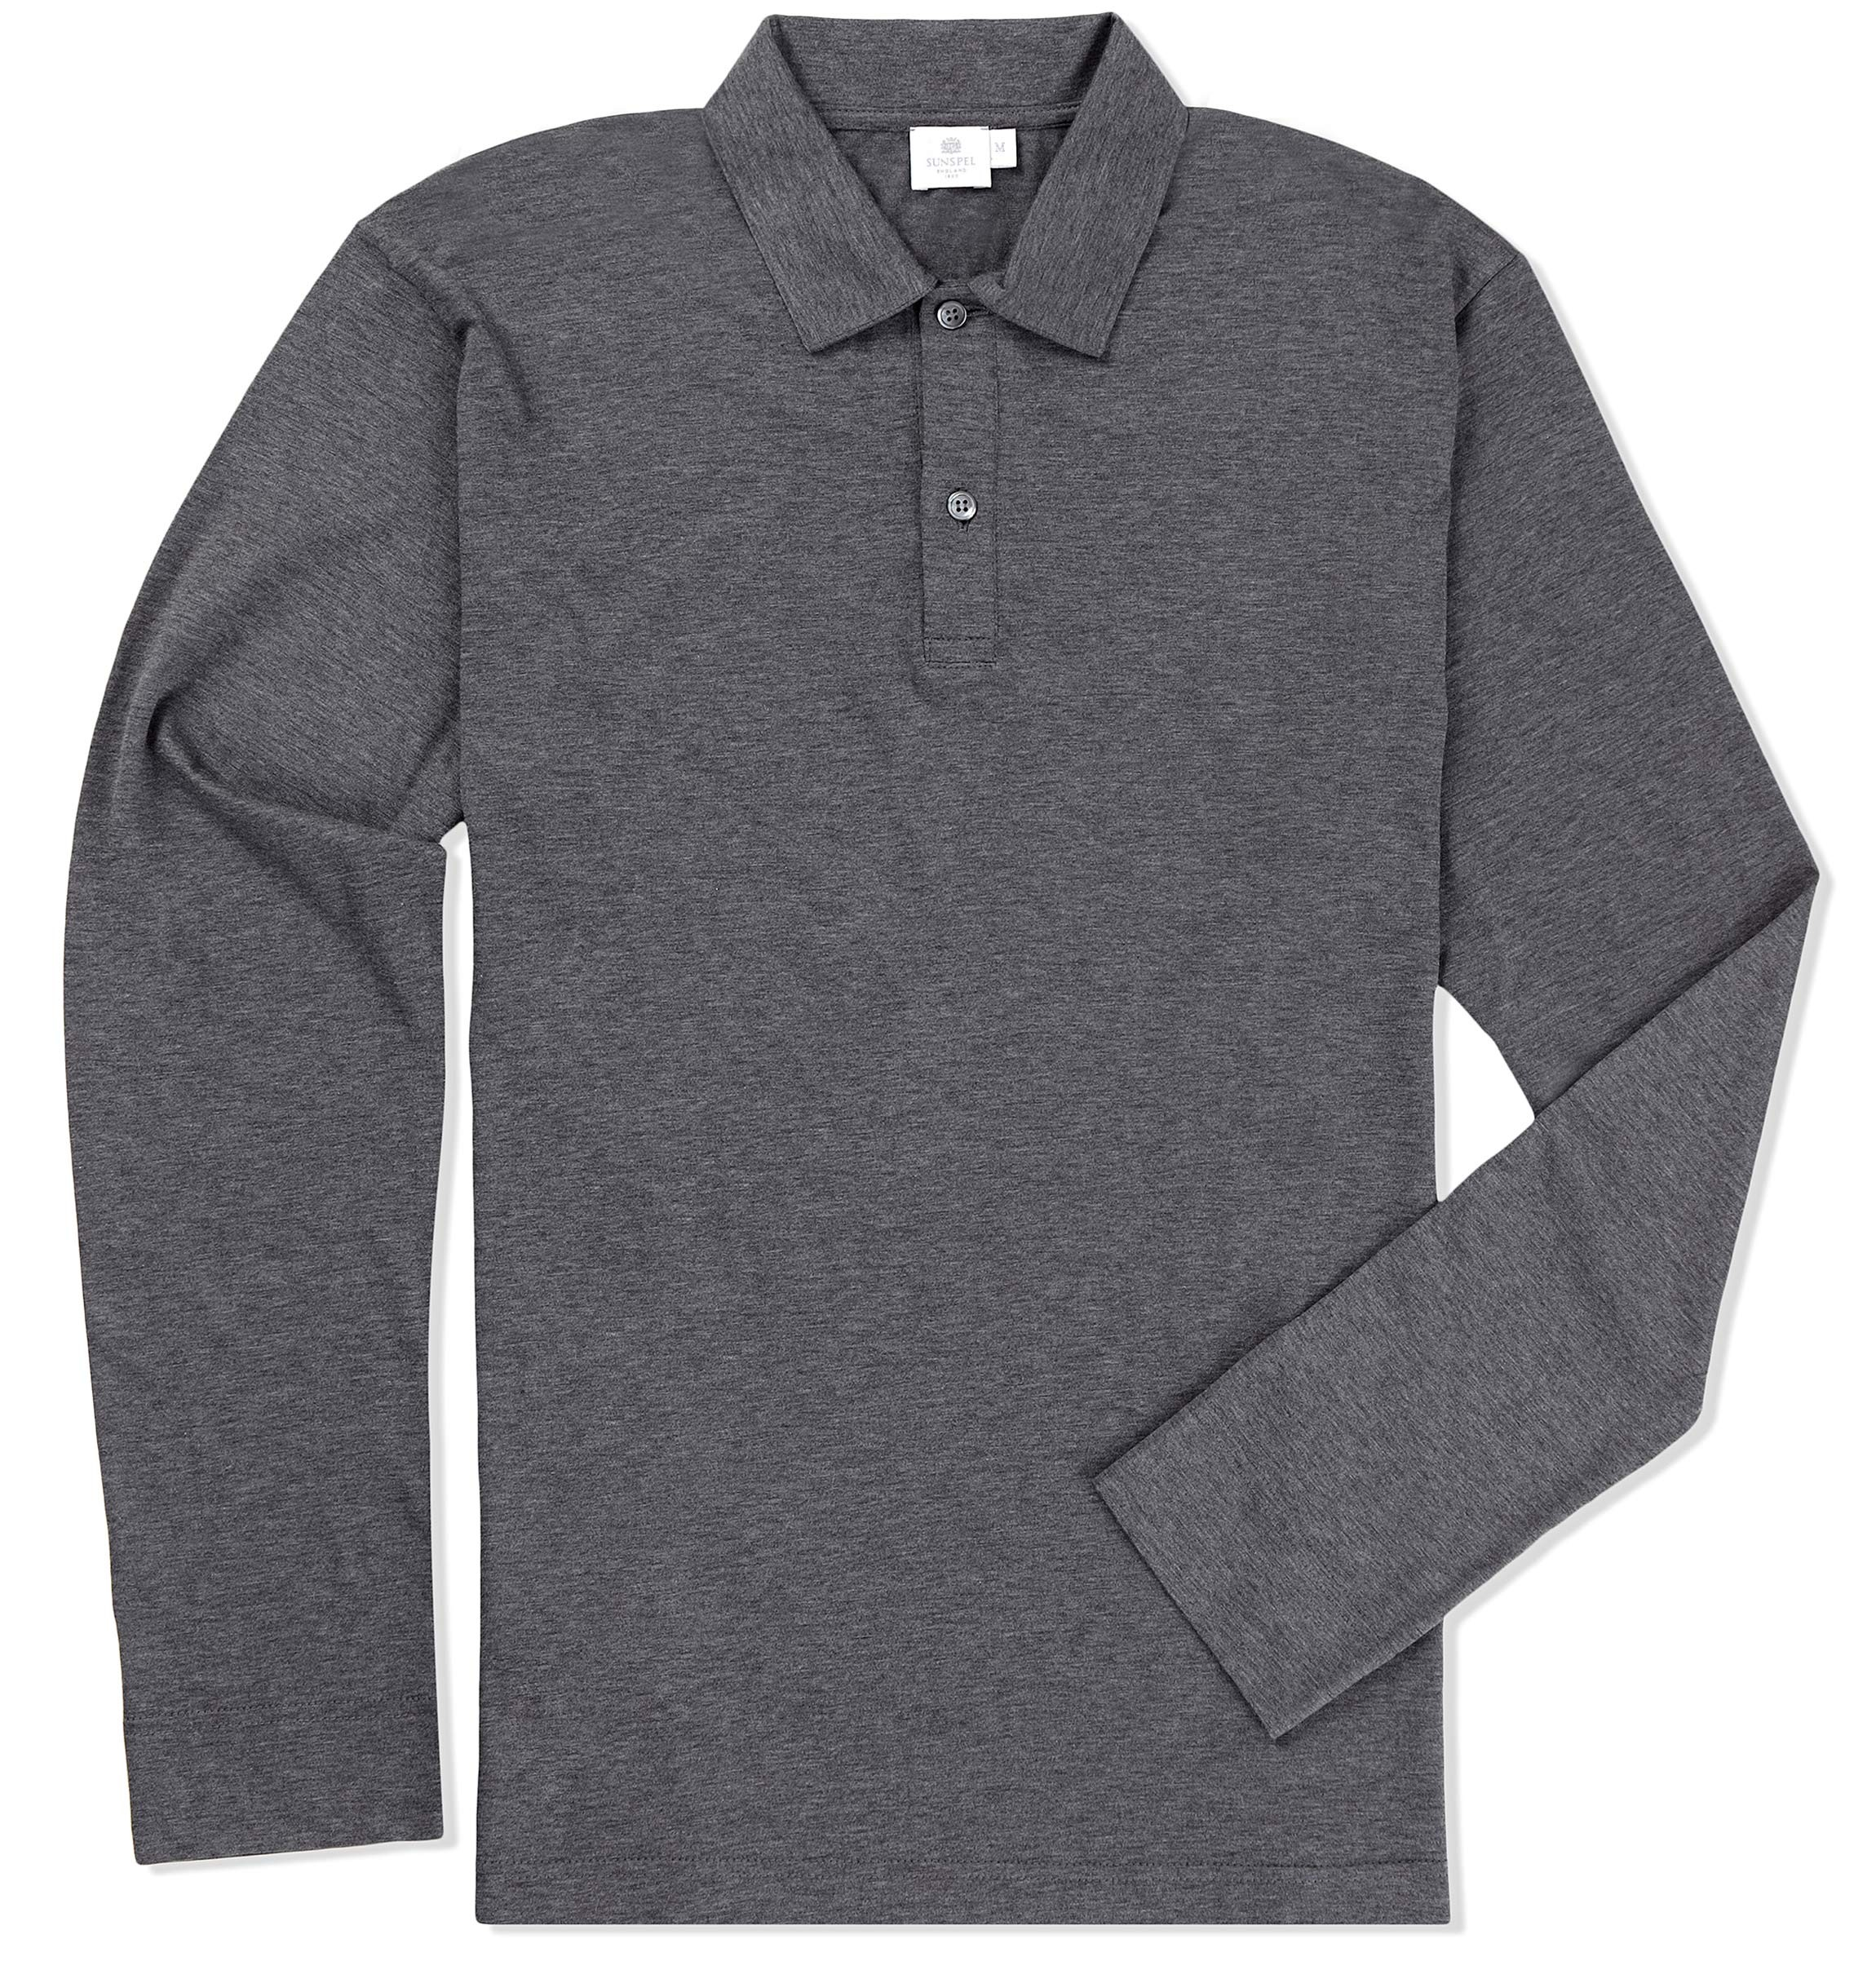 Lyst Sunspel Long Sleeve Jersey Polo Shirt In Gray For Men